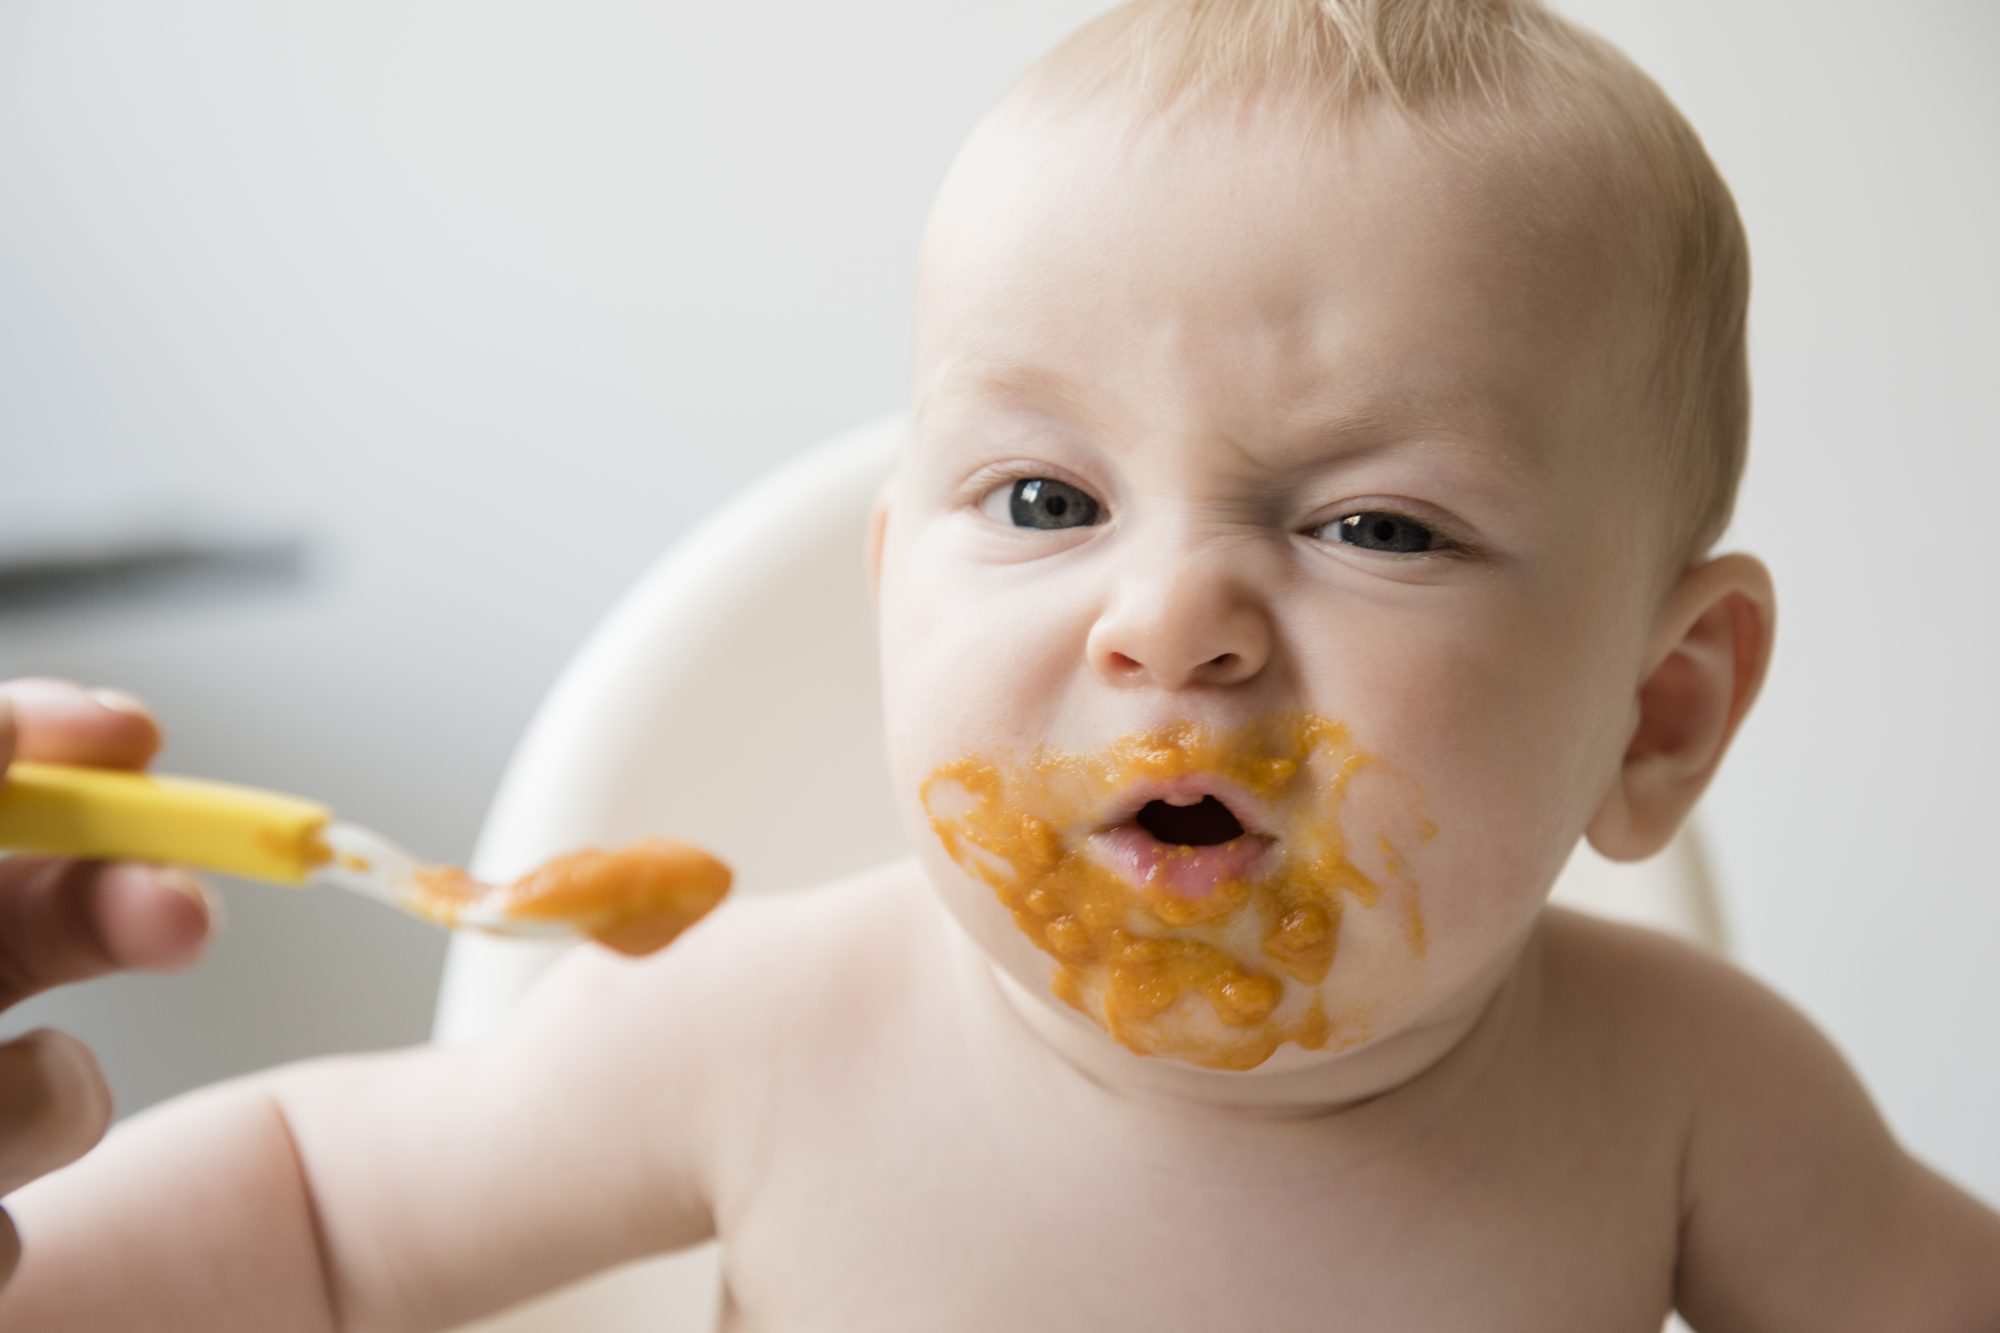 Baby Food Getty 10/17/19